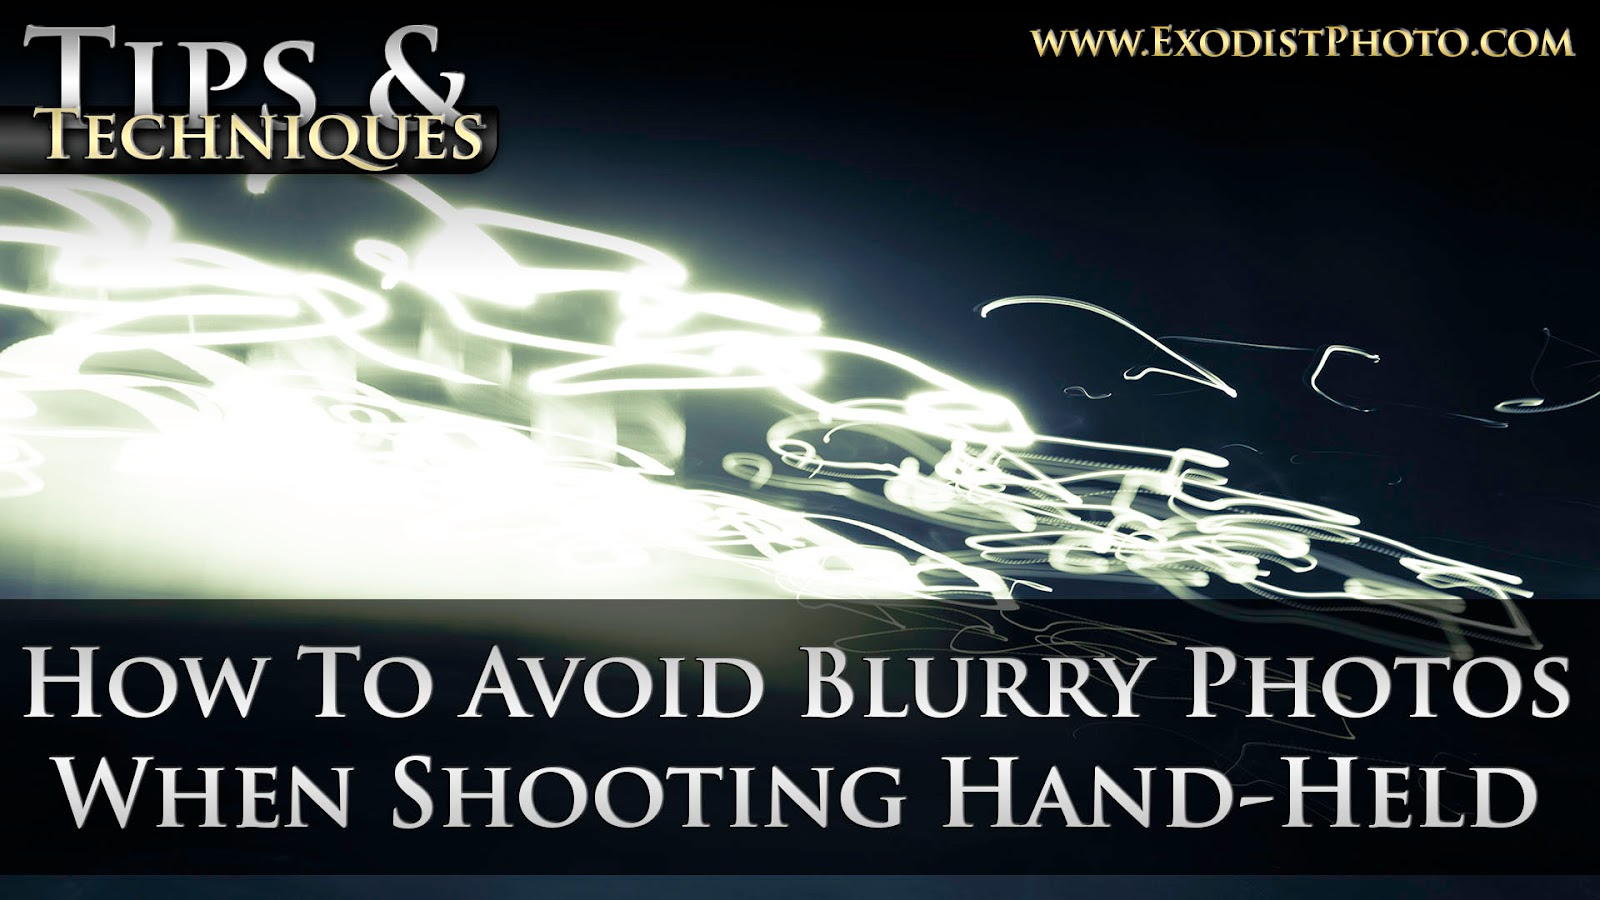 How To Avoid Blurry Photos When Shooting Hand-Held, Get Sharper Images | Tips & Techniques